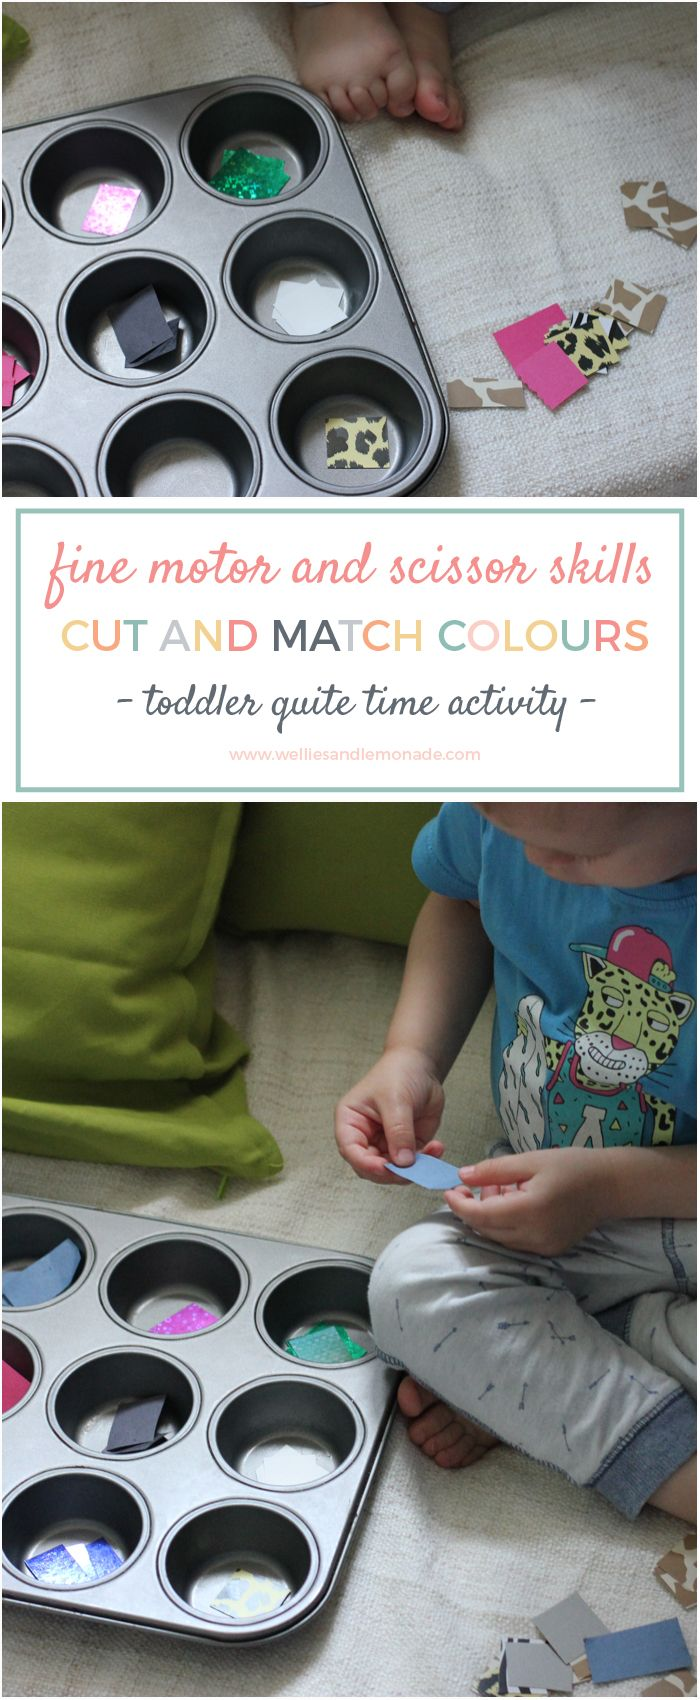 http://www.welliesandlemonade.com/shape-sorting-quite-time-activity